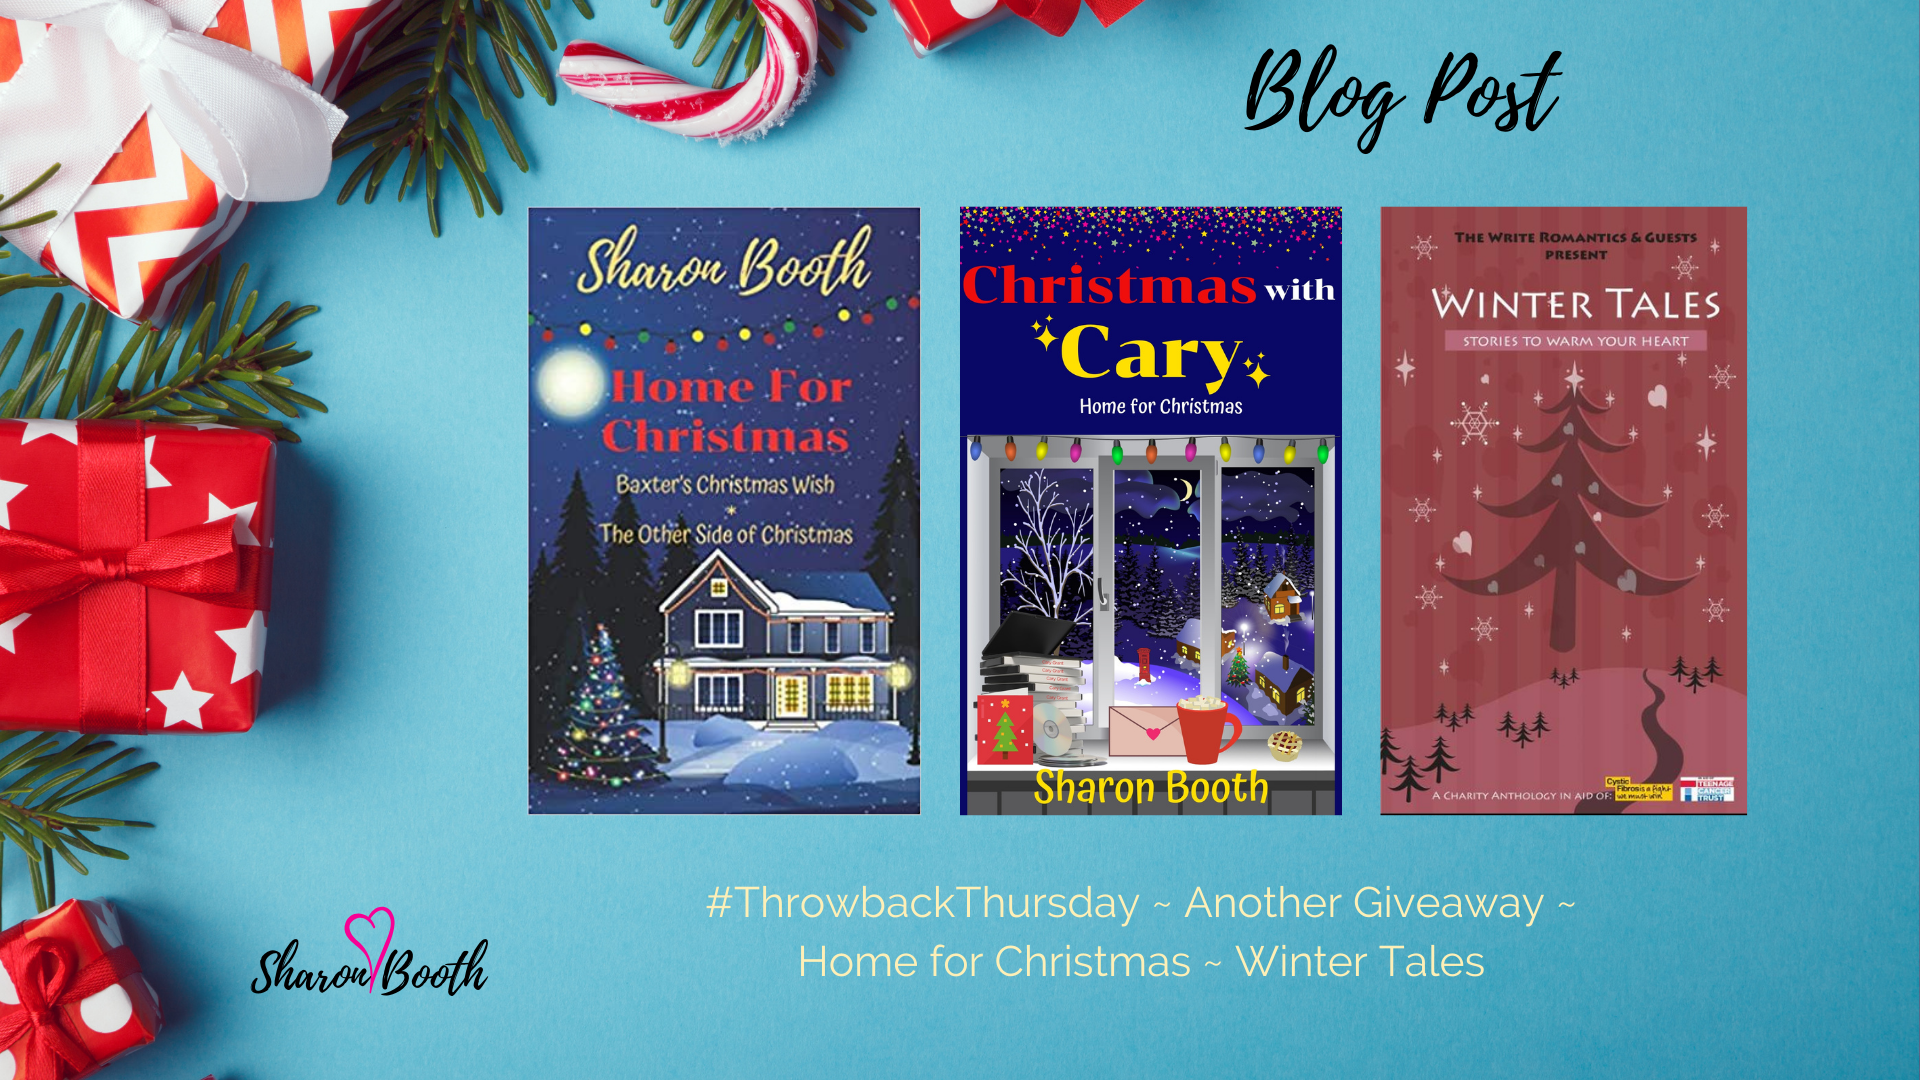 #ThrowbackThursday and another giveaway ~ Home for Christmas ~ Winter Tales